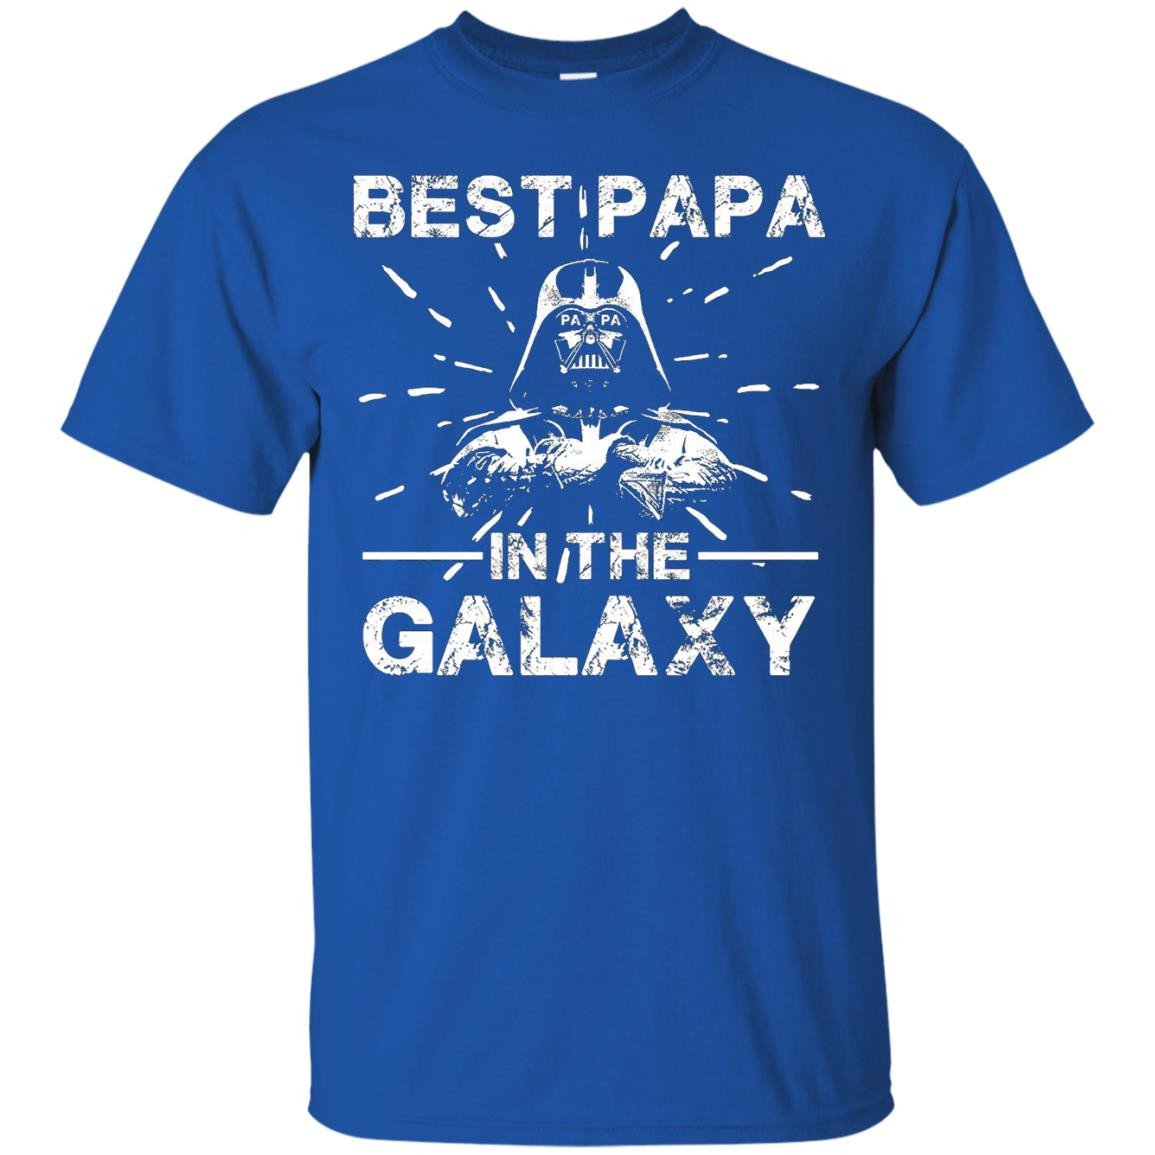 Men's Men's Father's Day Best Papa In The Galaxy T-shirt Son Gifts - T-Shirt